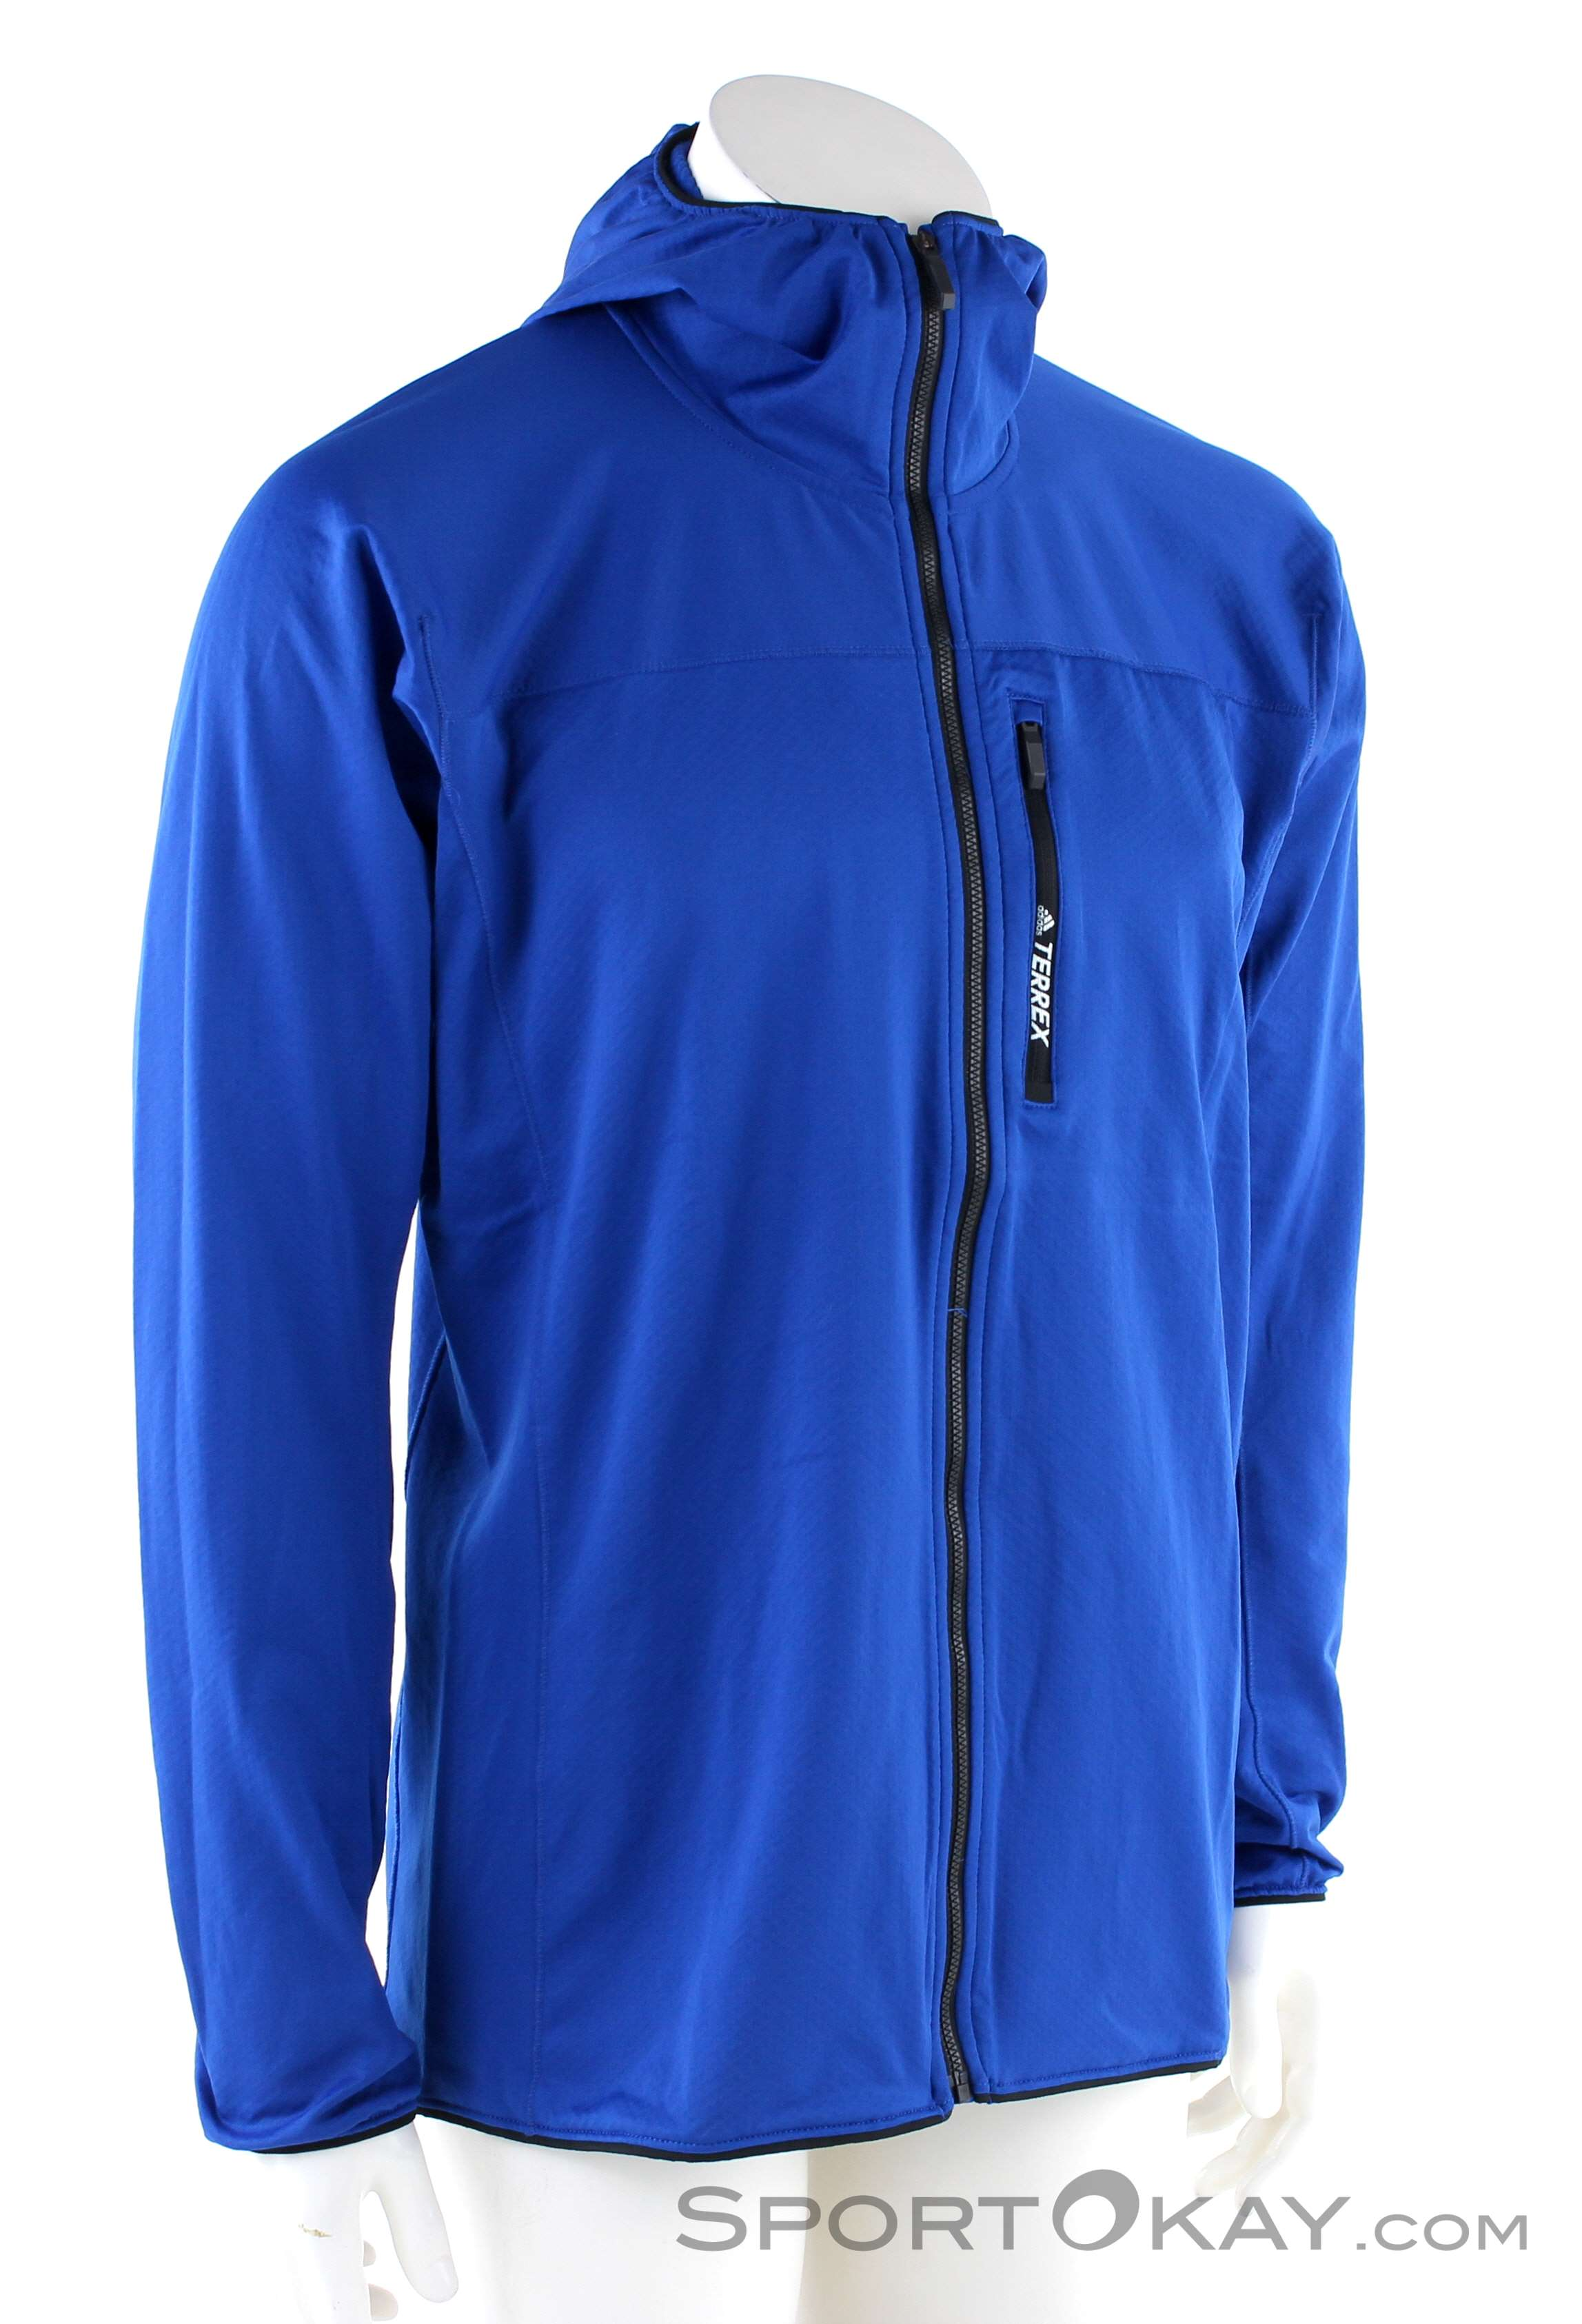 estera paquete Obediencia  adidas Trace Ho Fi Mens Running Jacket - Jackets - Running Clothing -  Running - All